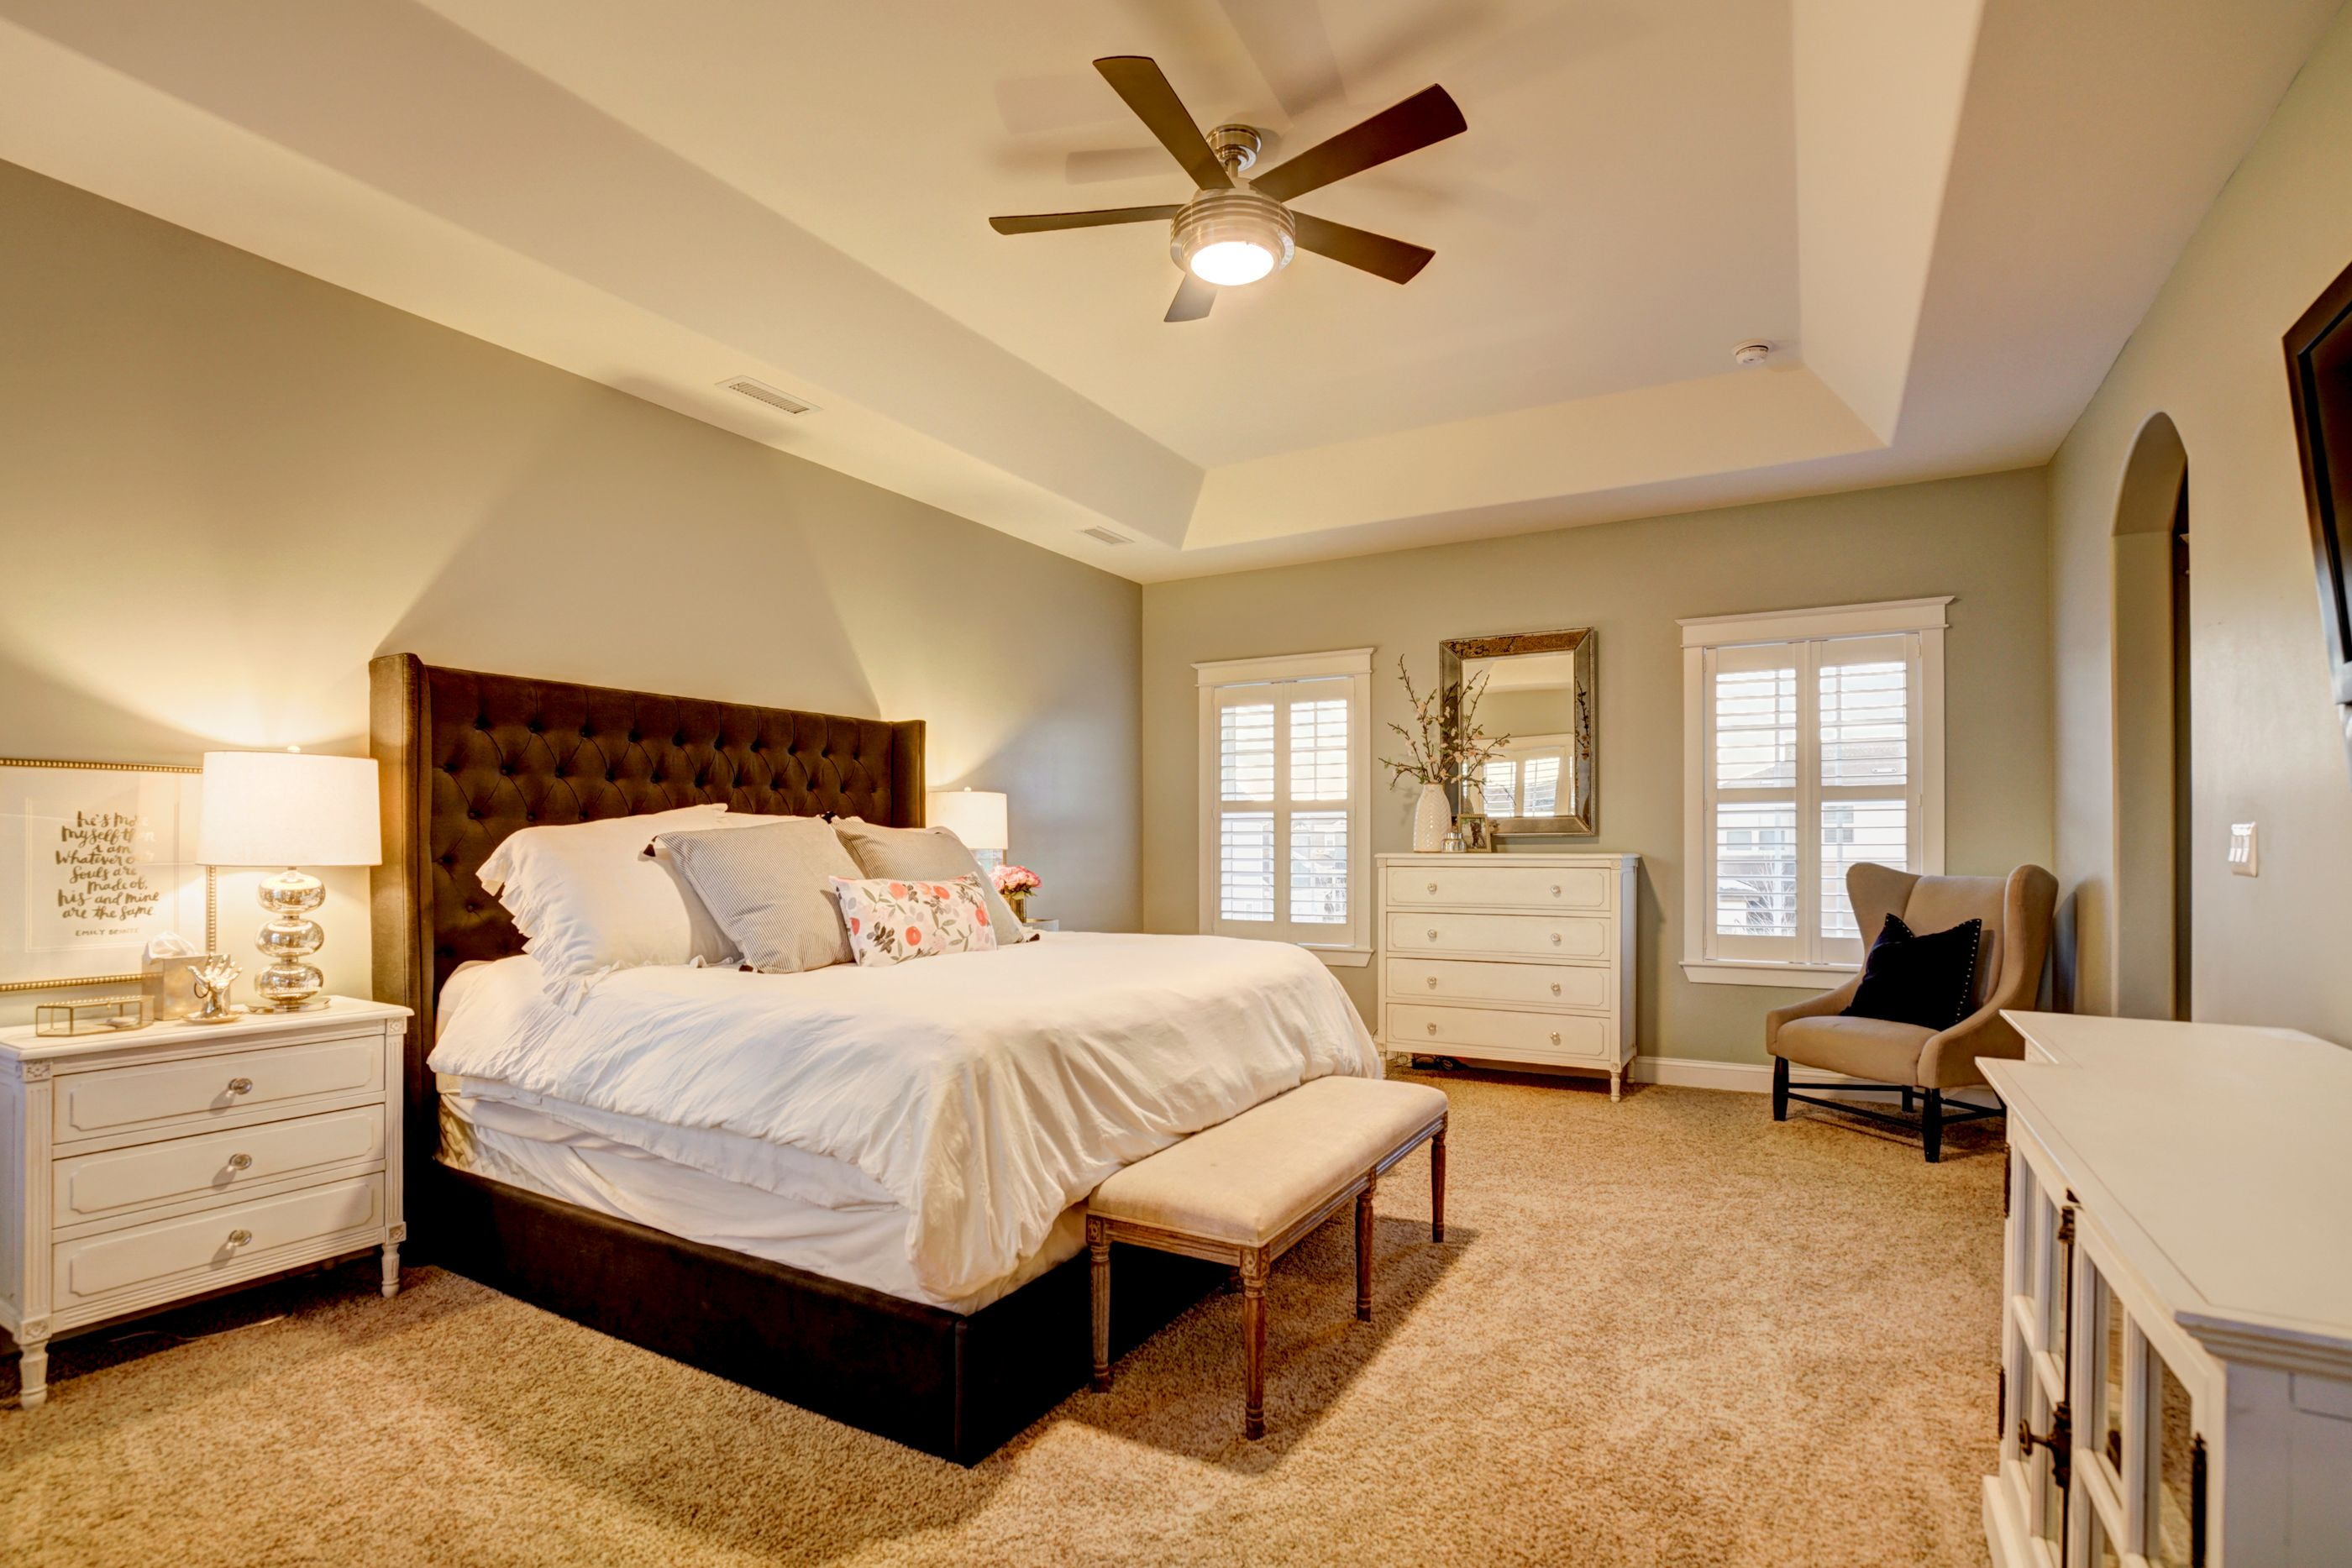 Bedroom featured in The Chestertown - Shenandoah Collection By Parkwood Homes in Denver, CO